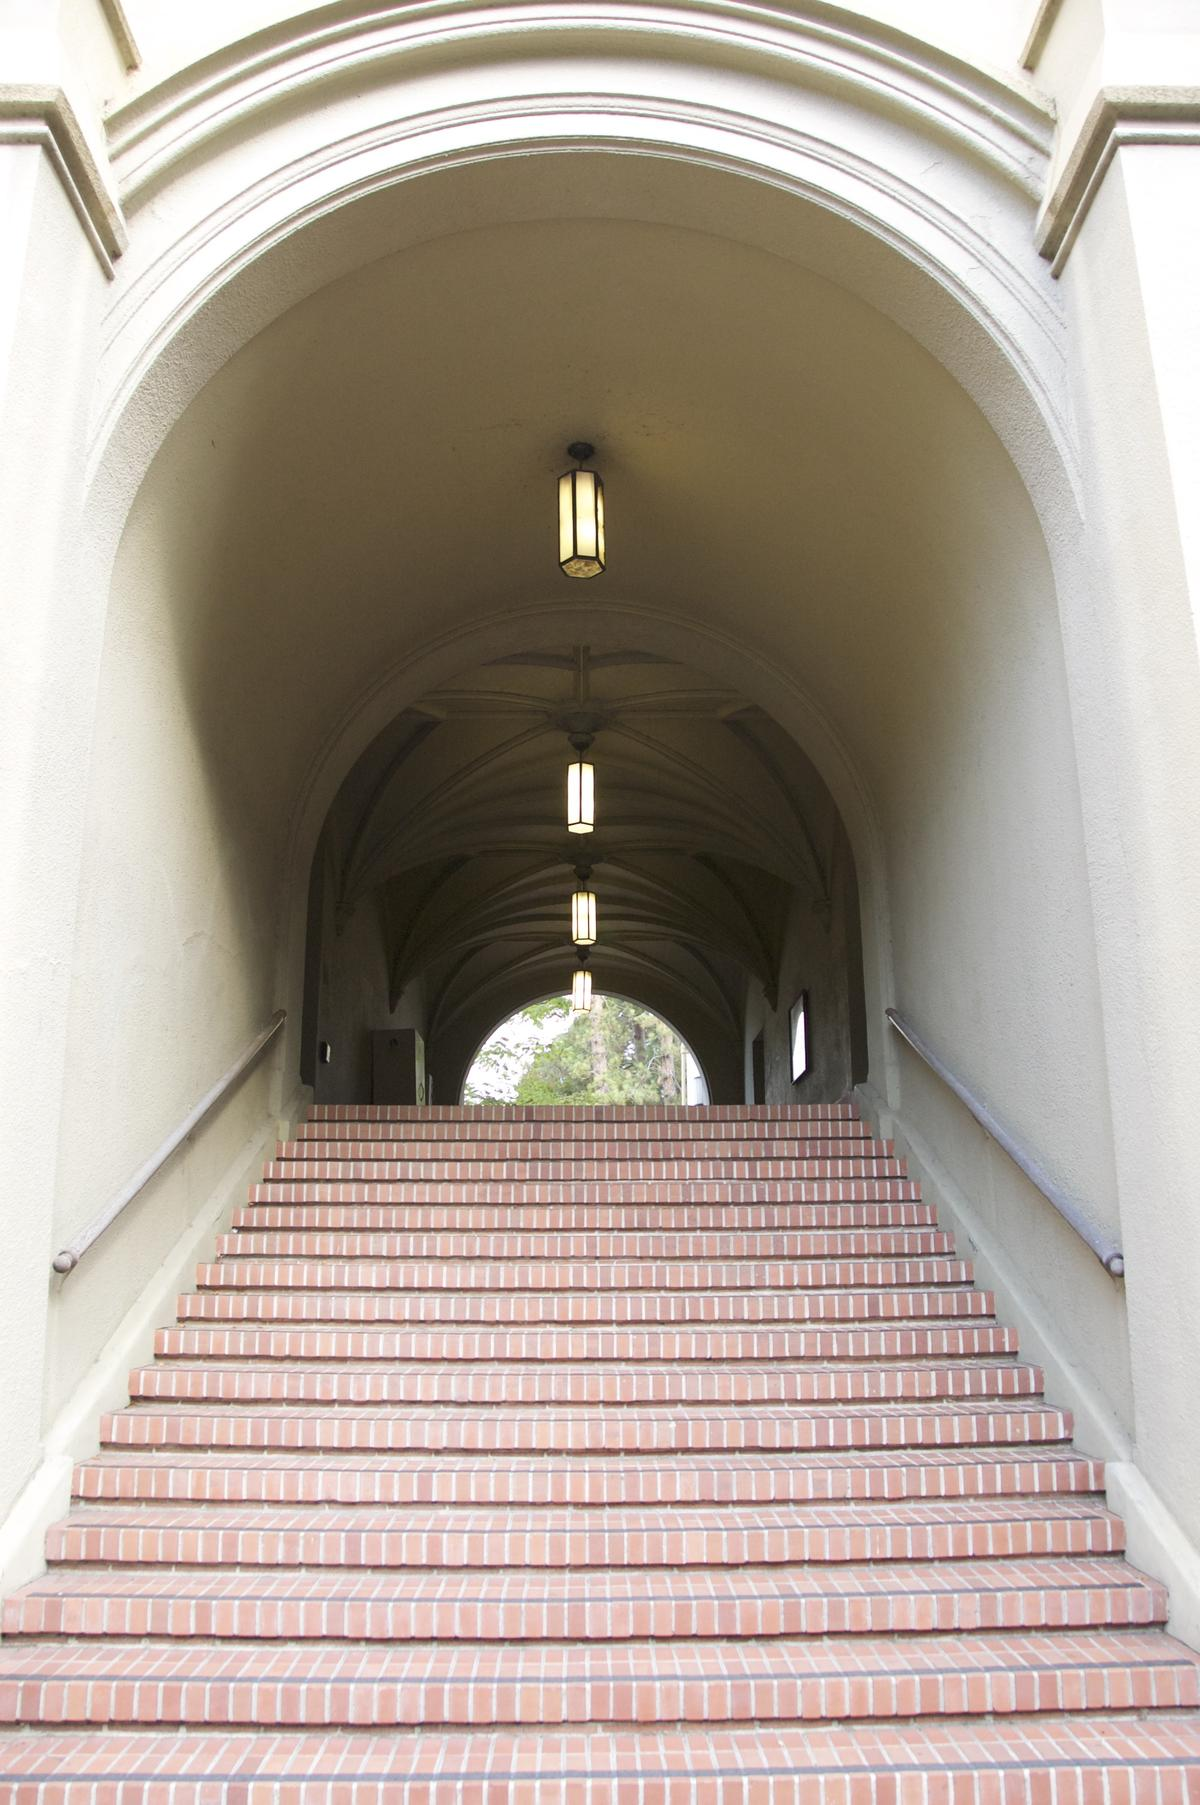 Stephens arch and stairs